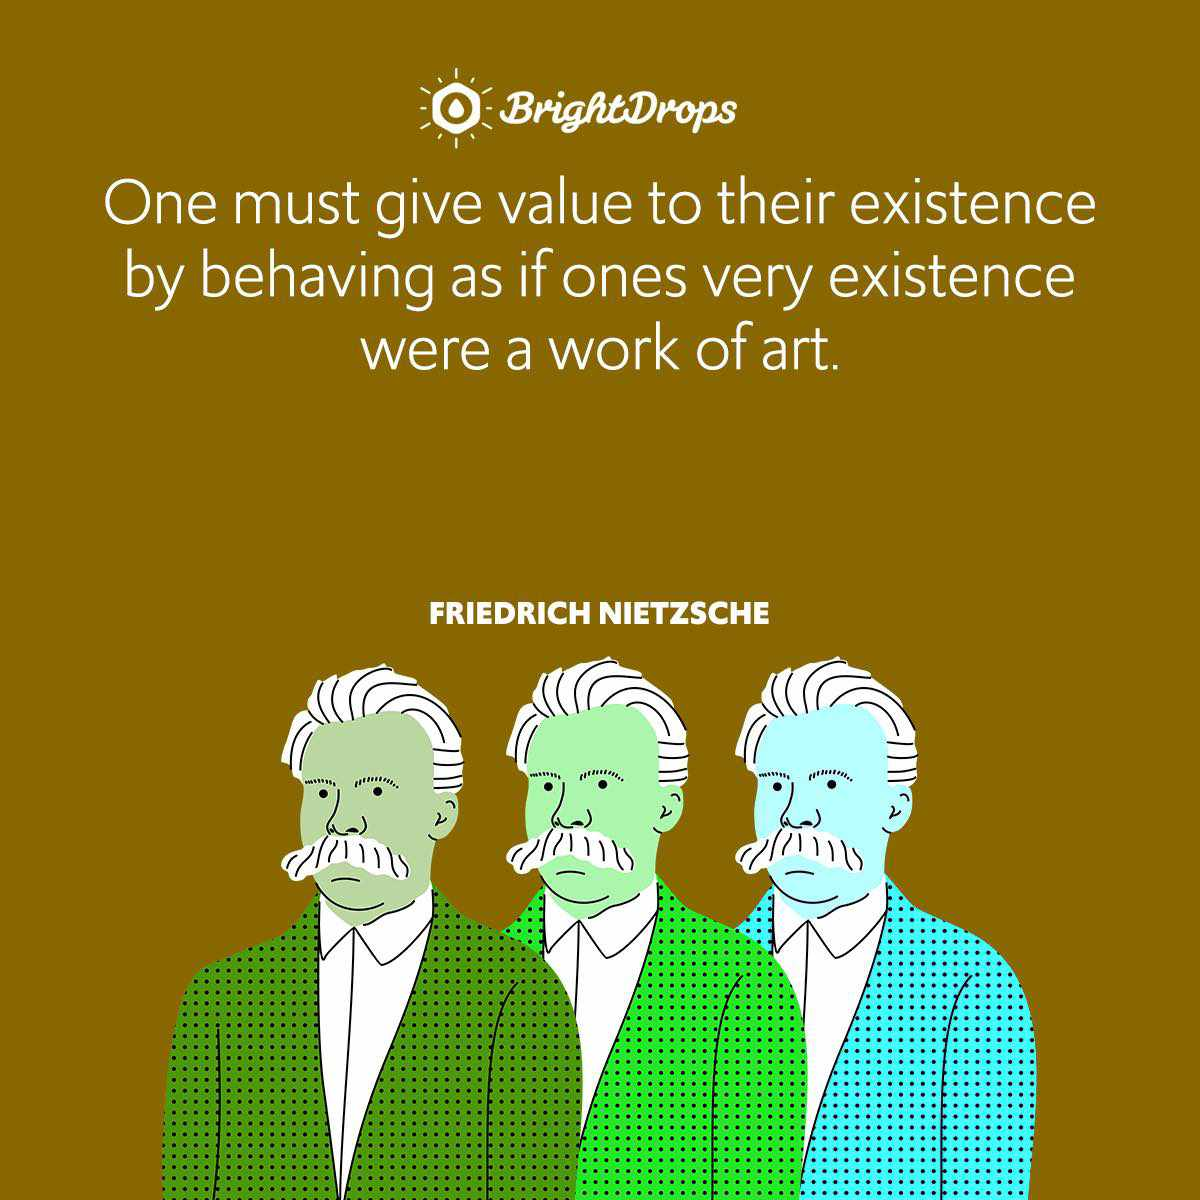 One must give value to their existence by behaving as if ones very existence were a work of art.